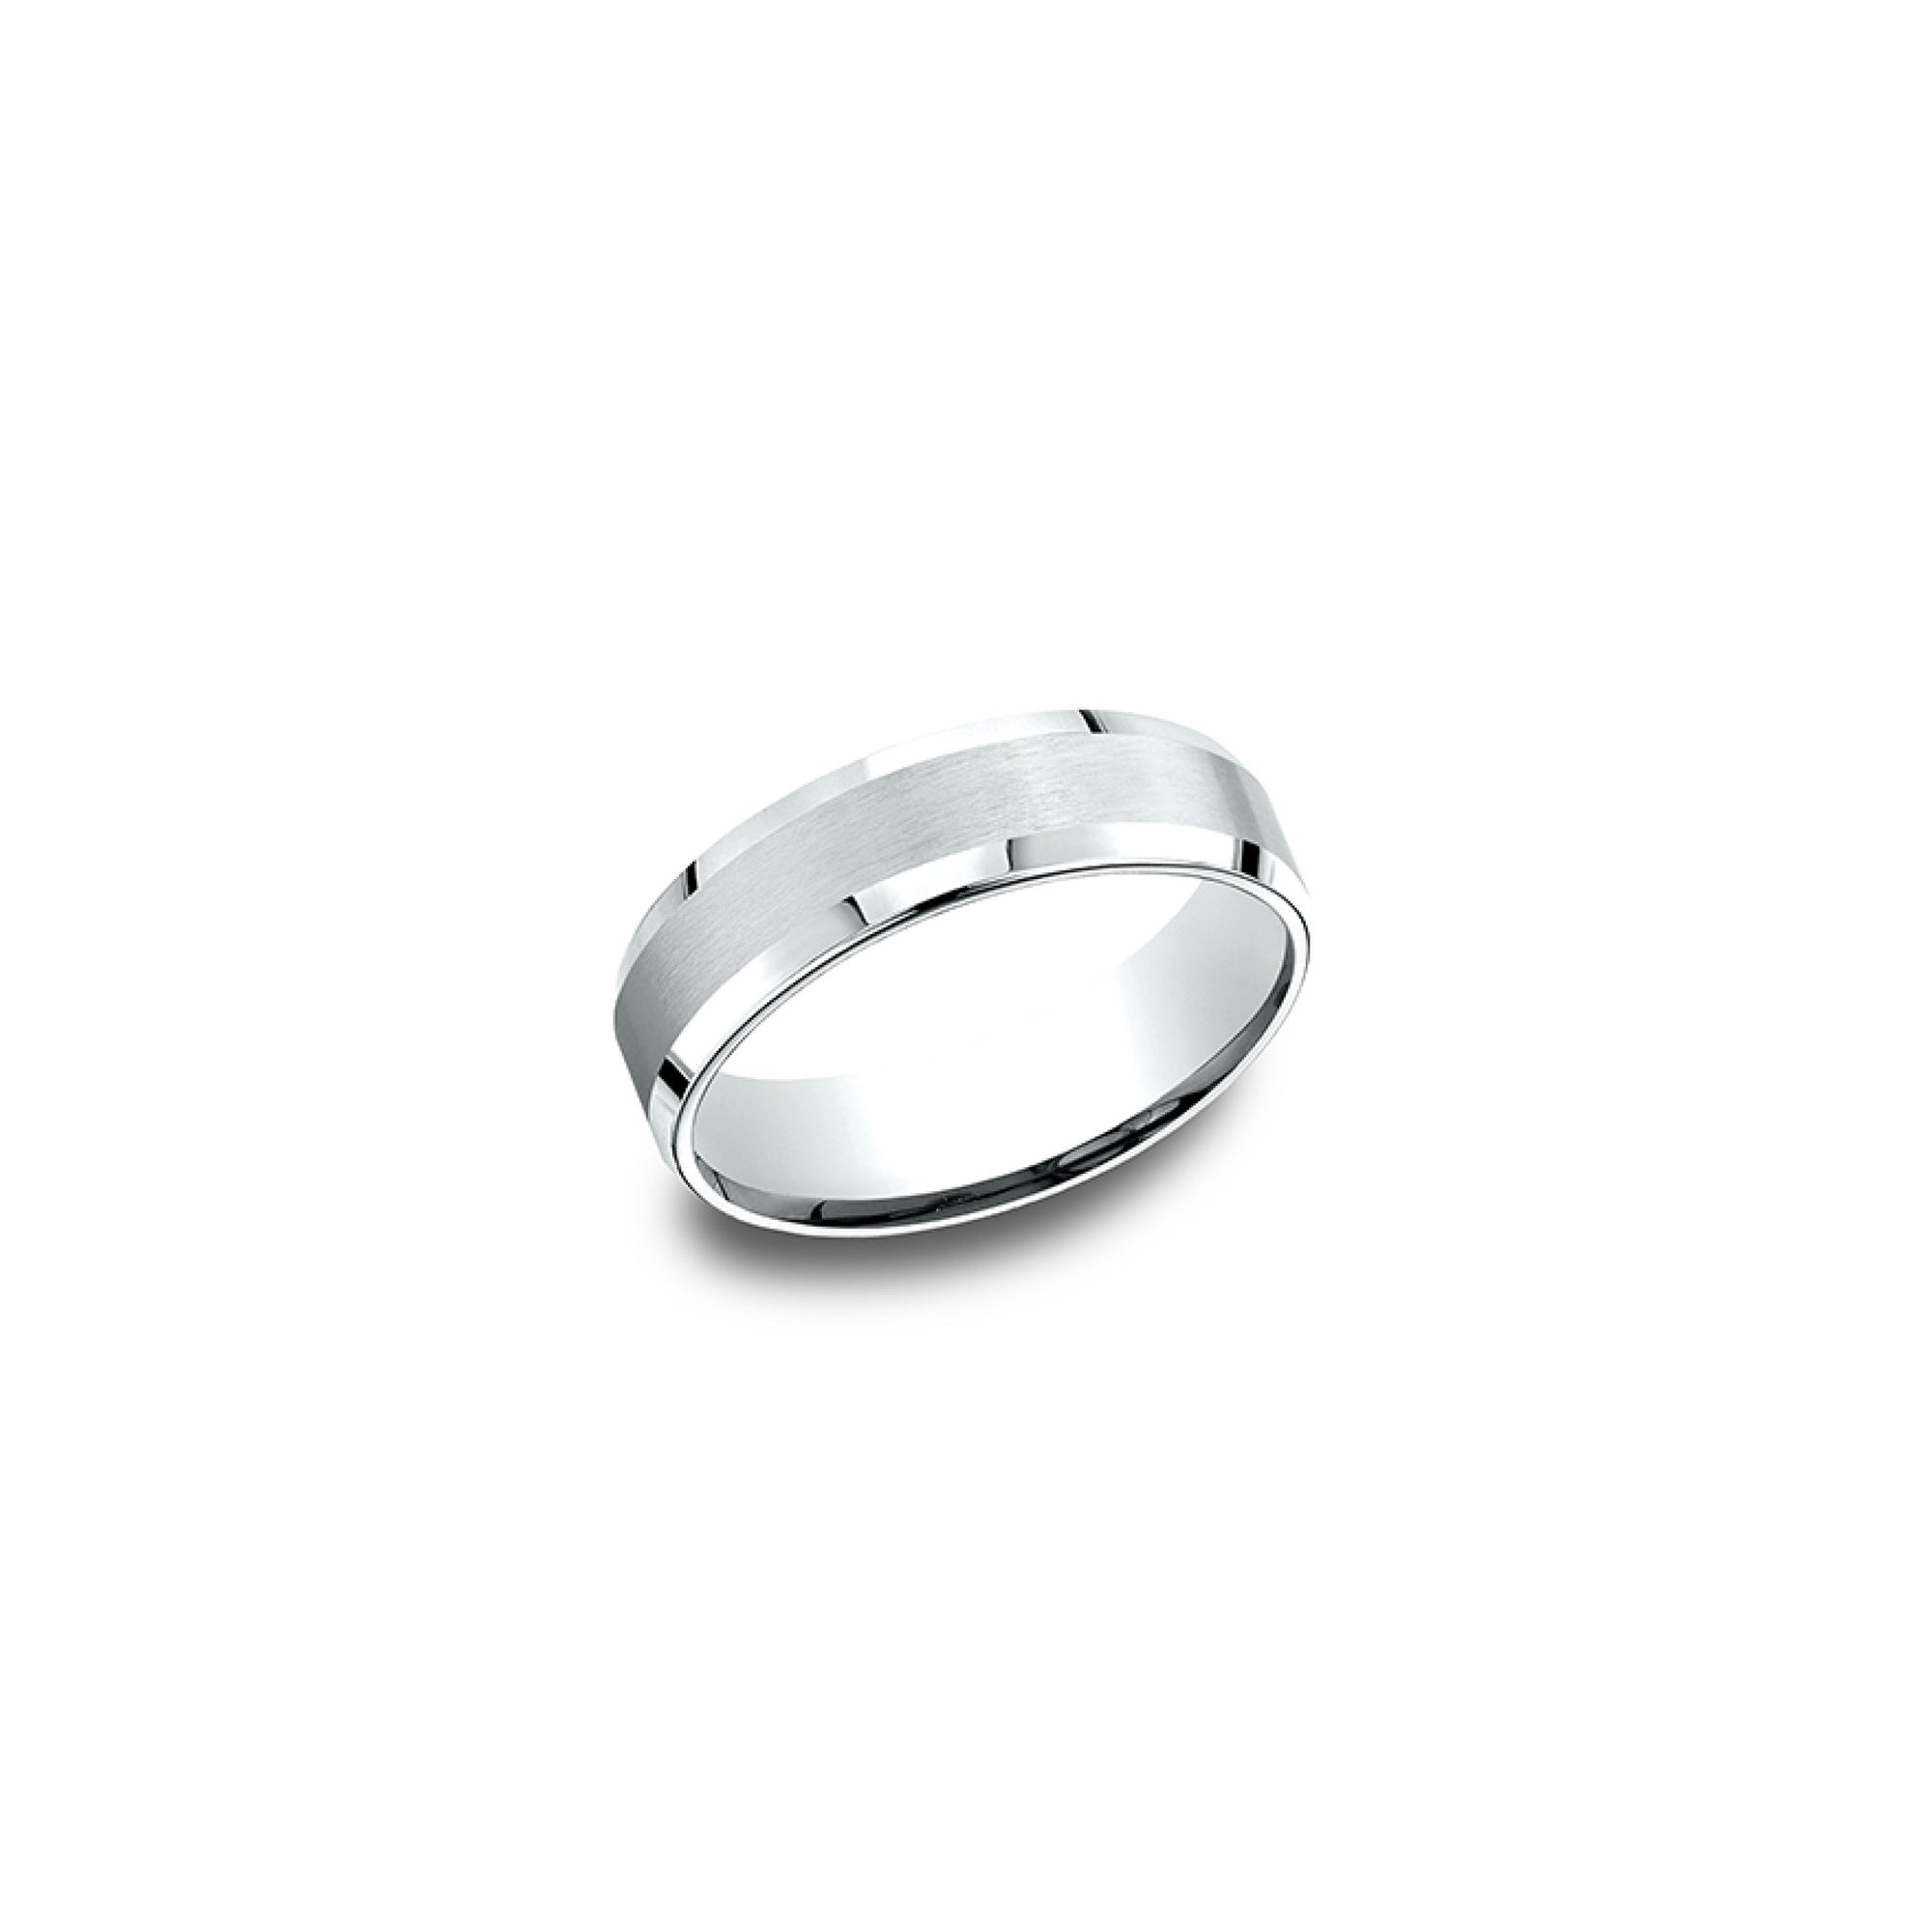 Beveled Edge White Gold Mens Wedding Band Desires by Mikolay